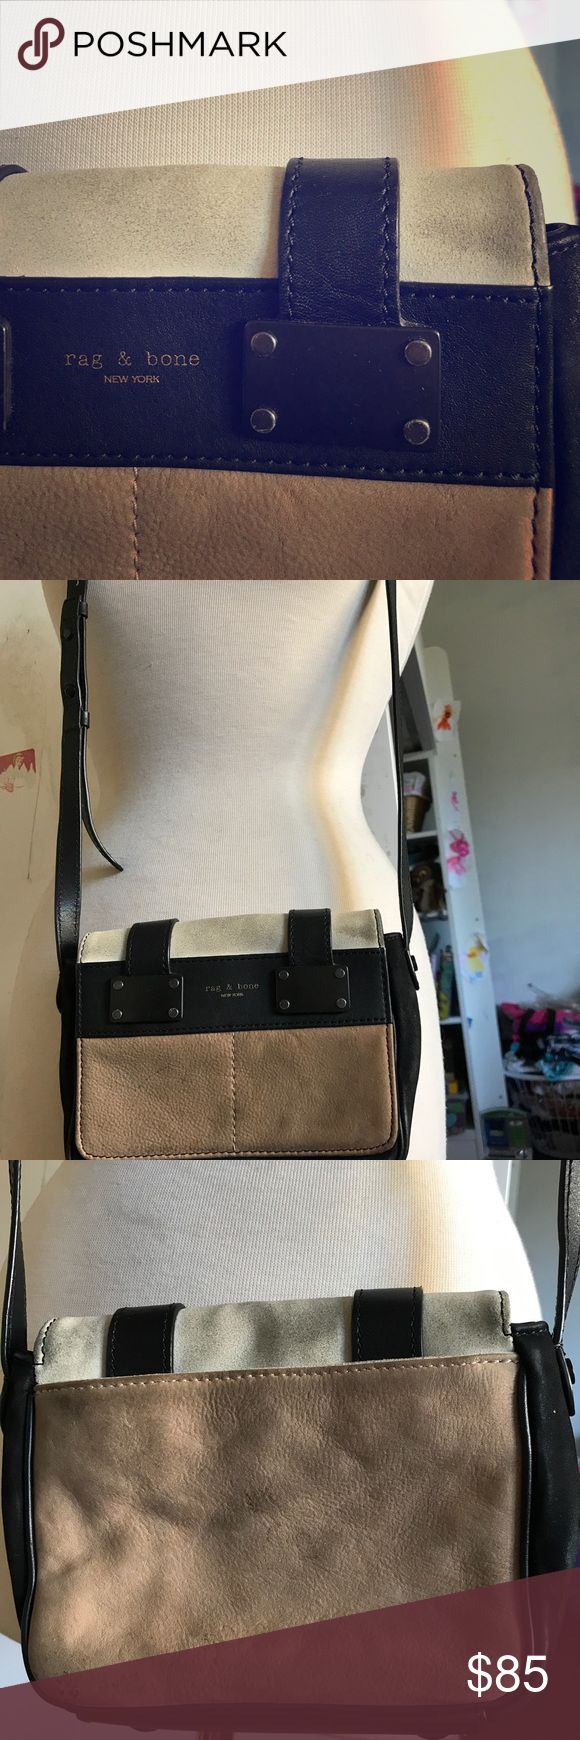 Rag and bone cross body bag Beautiful cross Body by Rag and bone free of rips and odors but does have conditioning so it is priced to sell. Can easily be thoroughly cleaned by leather specialist or a great cleaner. Made up of leather and suede. Serious buyers only. No space for trades or low ballers selling only..open to best offers..thanks for looking🙏 rag & bone Bags Crossbody Bags